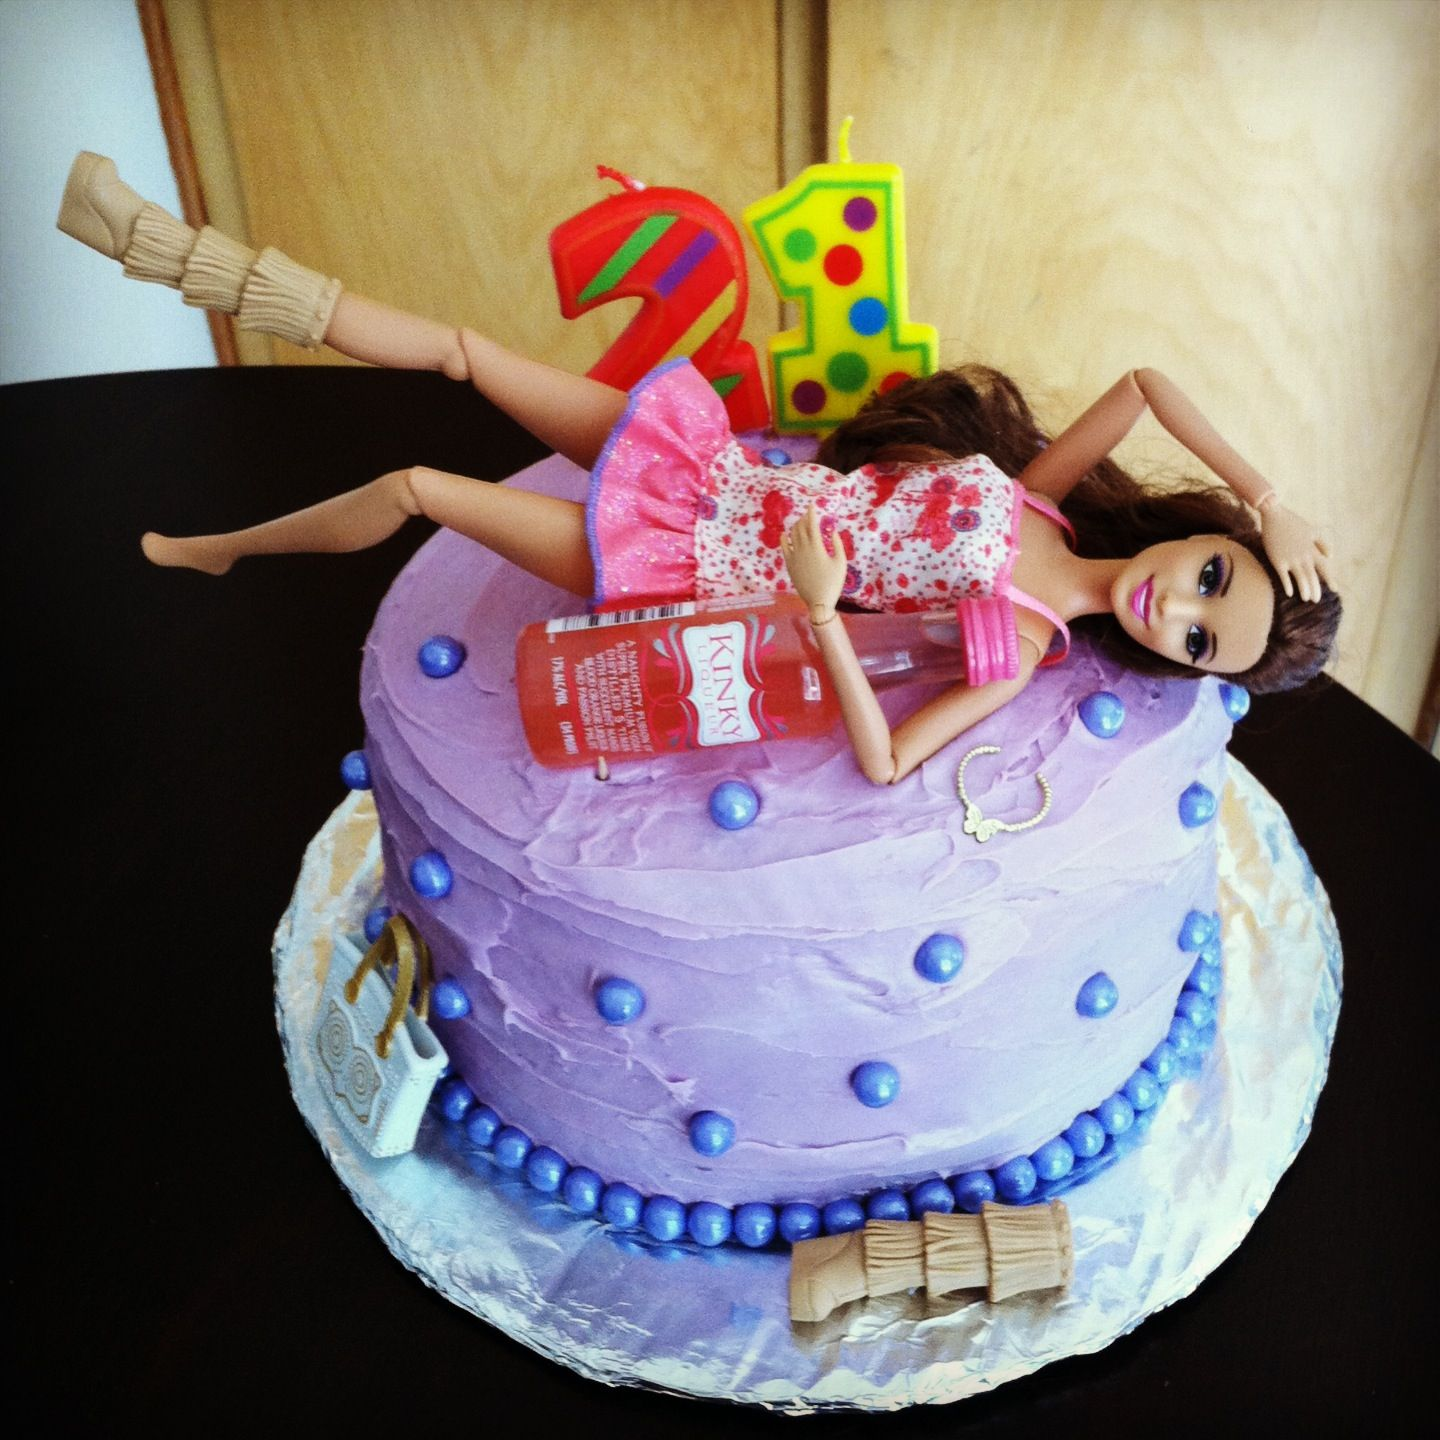 Birthday Cake For Sister Images : The Drunk Barbie Cake I Made My Sister In Law. I Made It ...